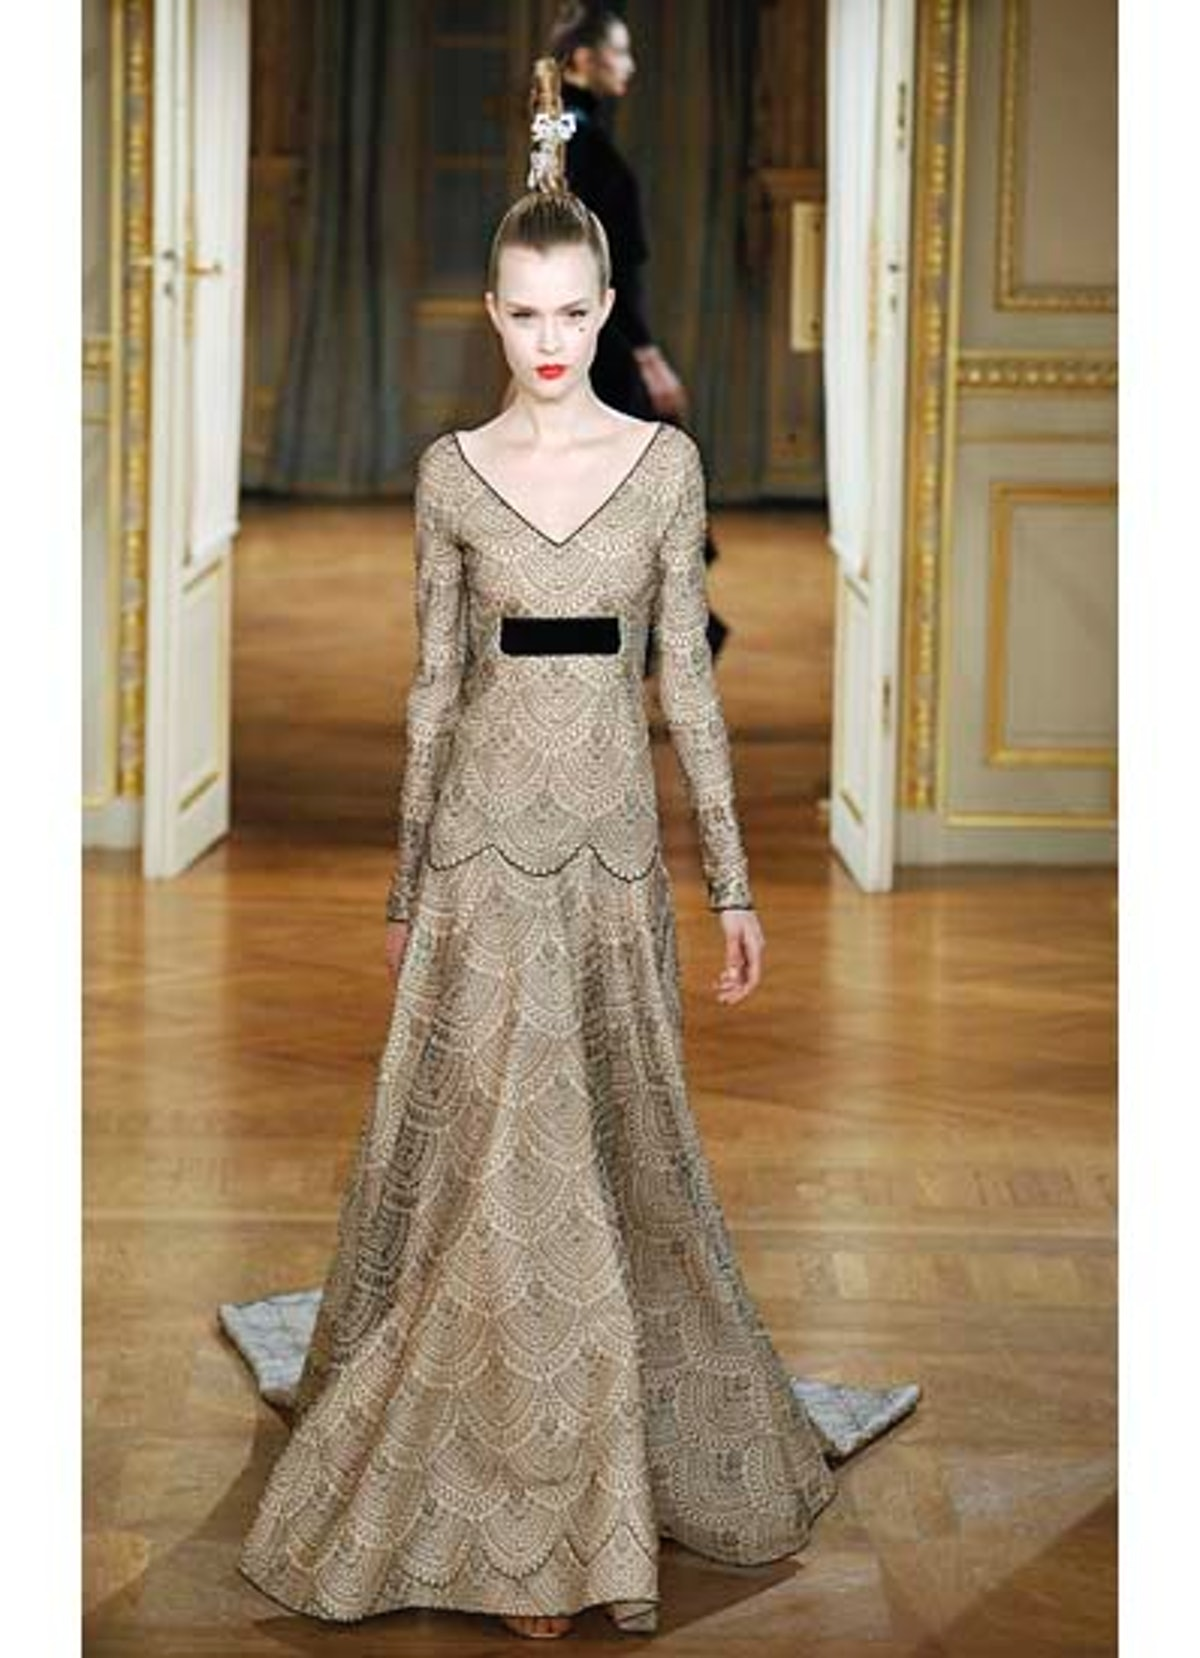 fass-alexis-mabille-couture-2012-runway-08-v.jpg